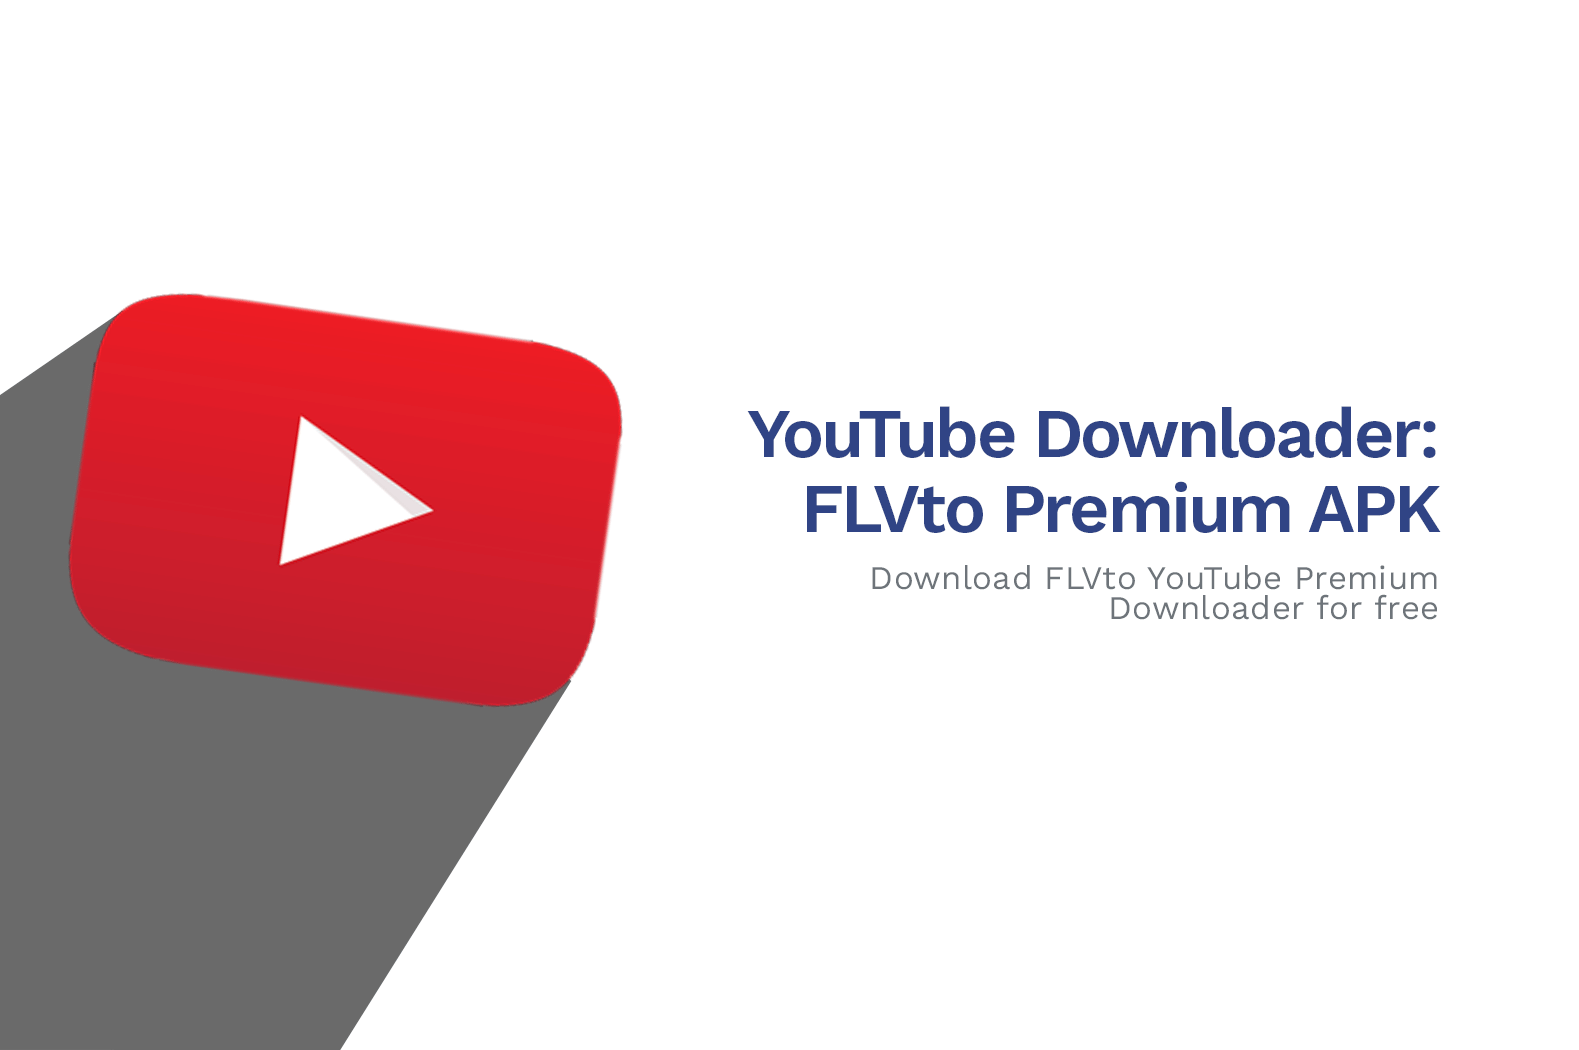 FLVto YouTube Premium Downloader App APK ver. 3.3.25.1